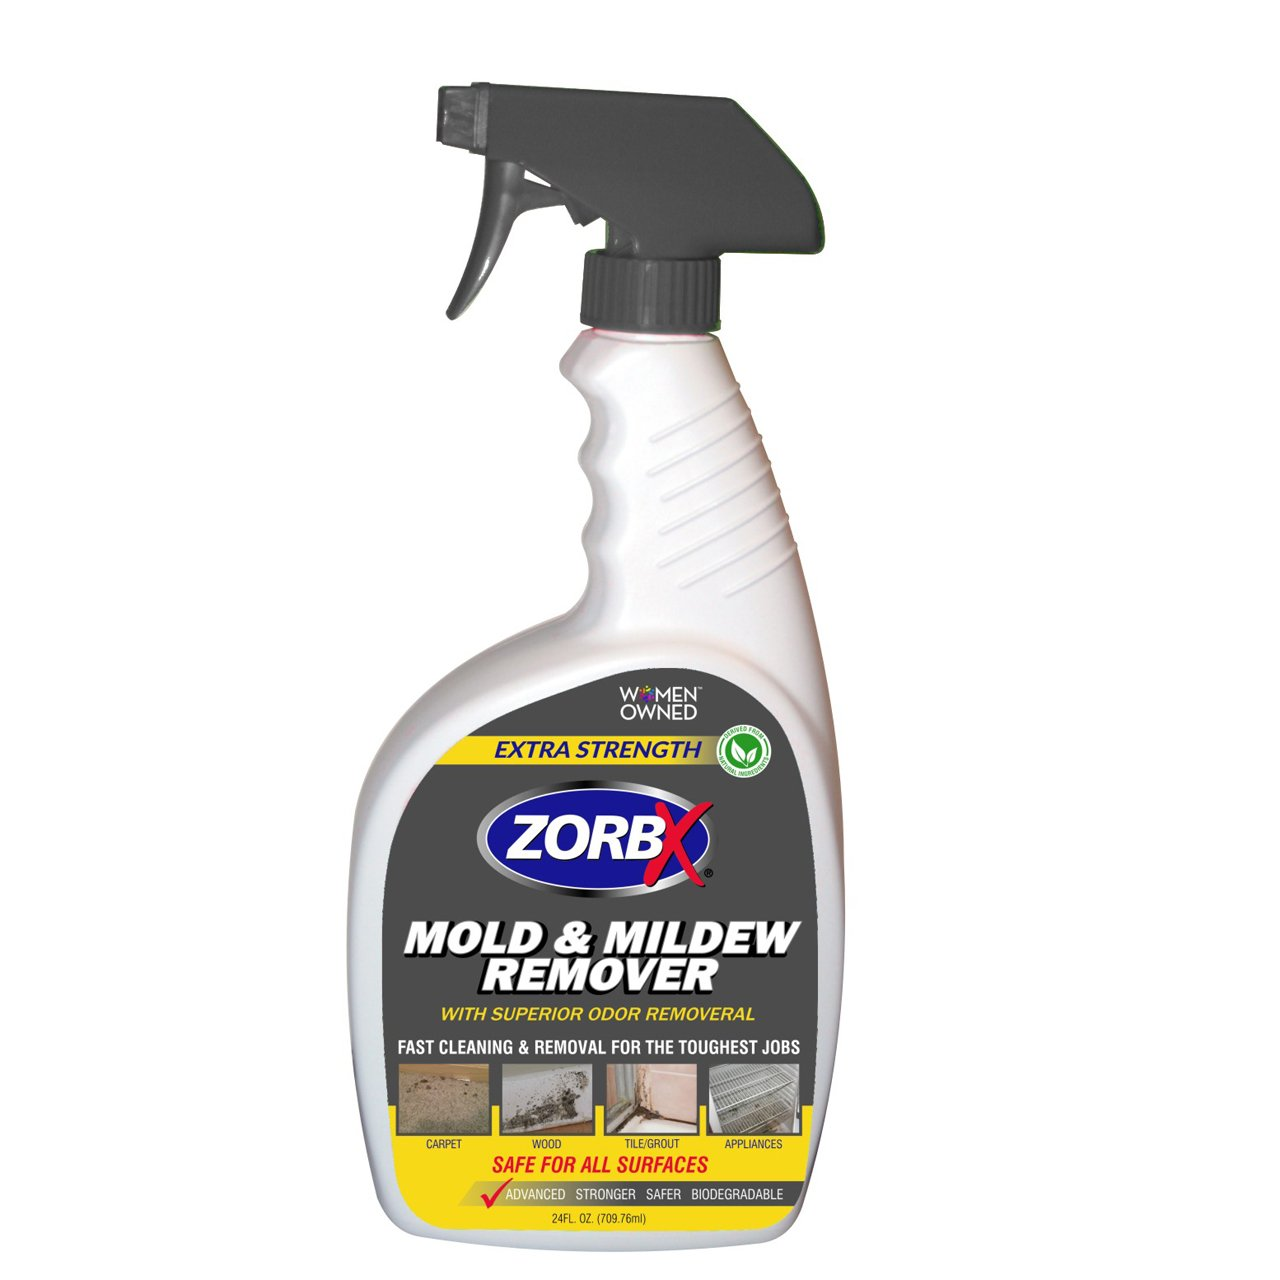 ZorbX Extra Strength Mold and Mildew Cleaner and Odor Remover – Non-Toxic and Biodegradable Cleaner and Odor Remover is Safe for All, Even Children, with No Harsh Chemicals (24 oz.)